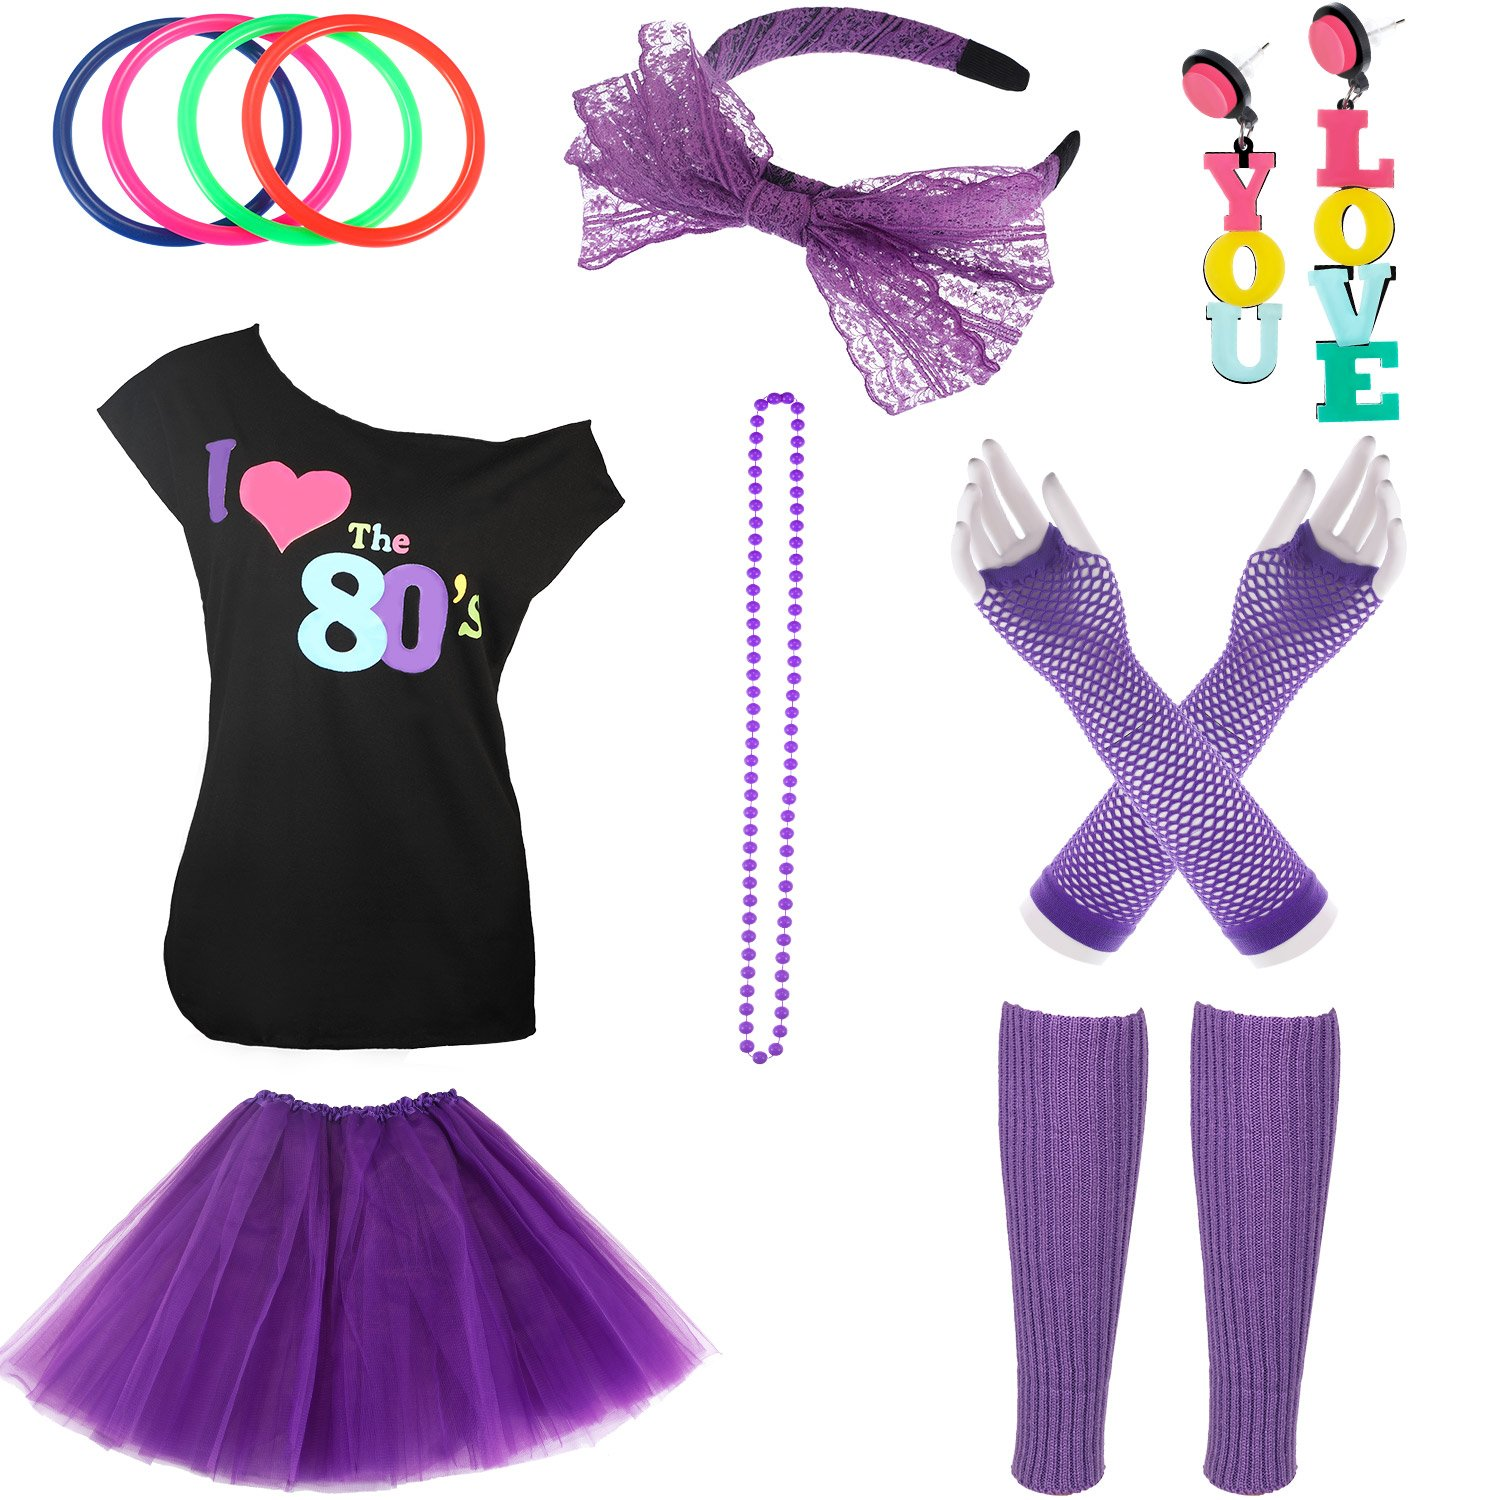 Jetec 80s Costume Accessories Set Necklace Bangle Leg Warmers Earrings Gloves Tutu Skirt T-Shirt for Party Accessory (L, Set 2)